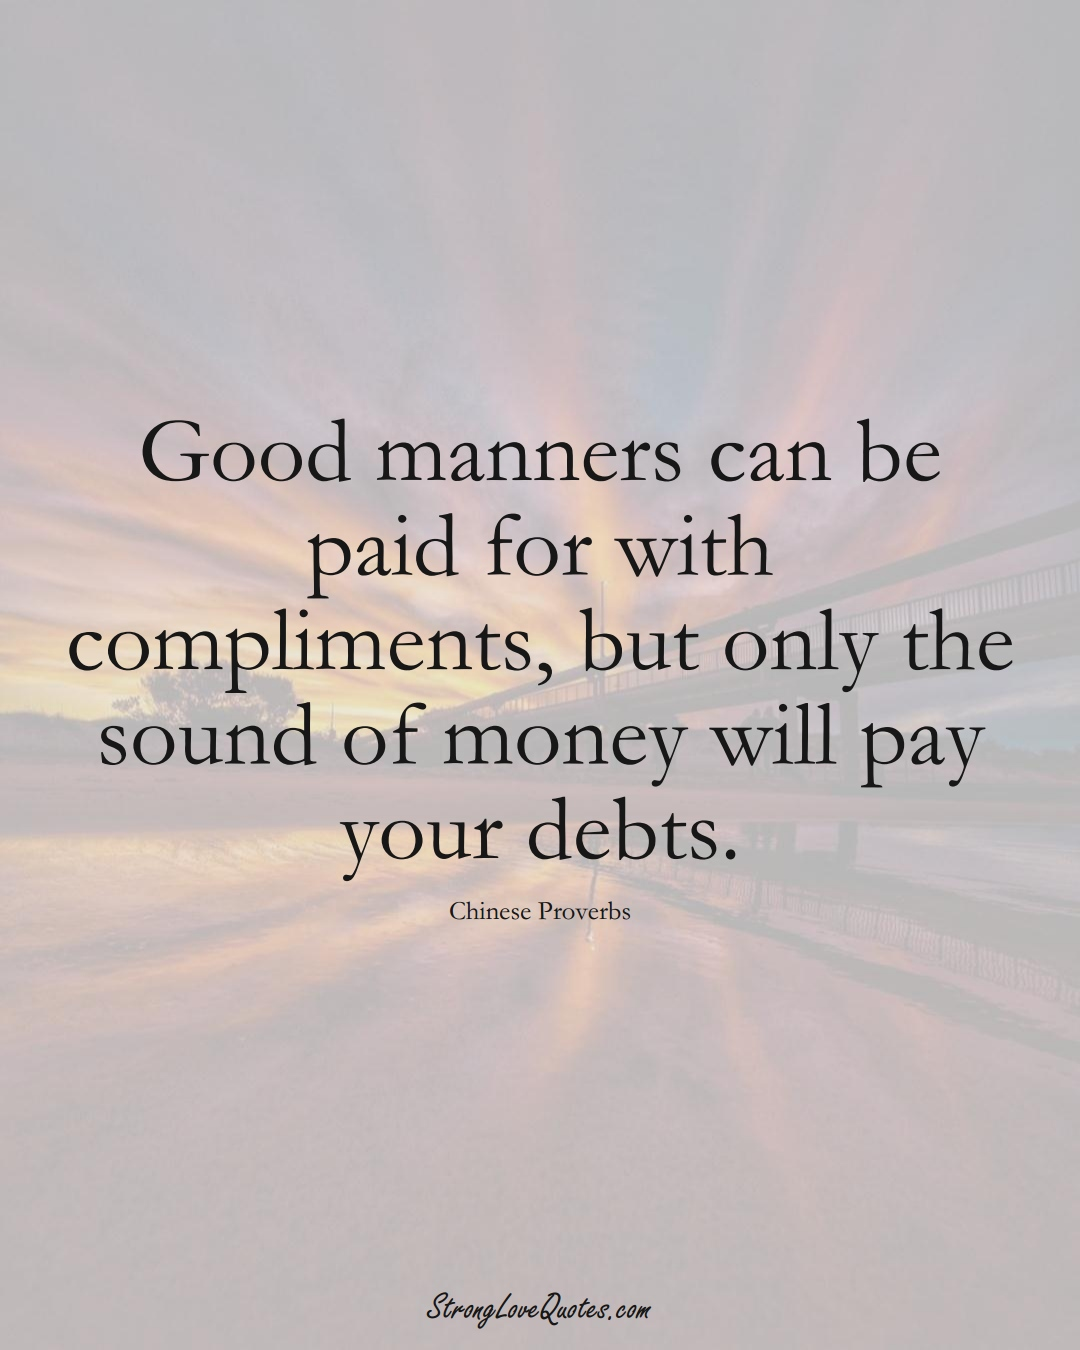 Good manners can be paid for with compliments, but only the sound of money will pay your debts. (Chinese Sayings);  #AsianSayings